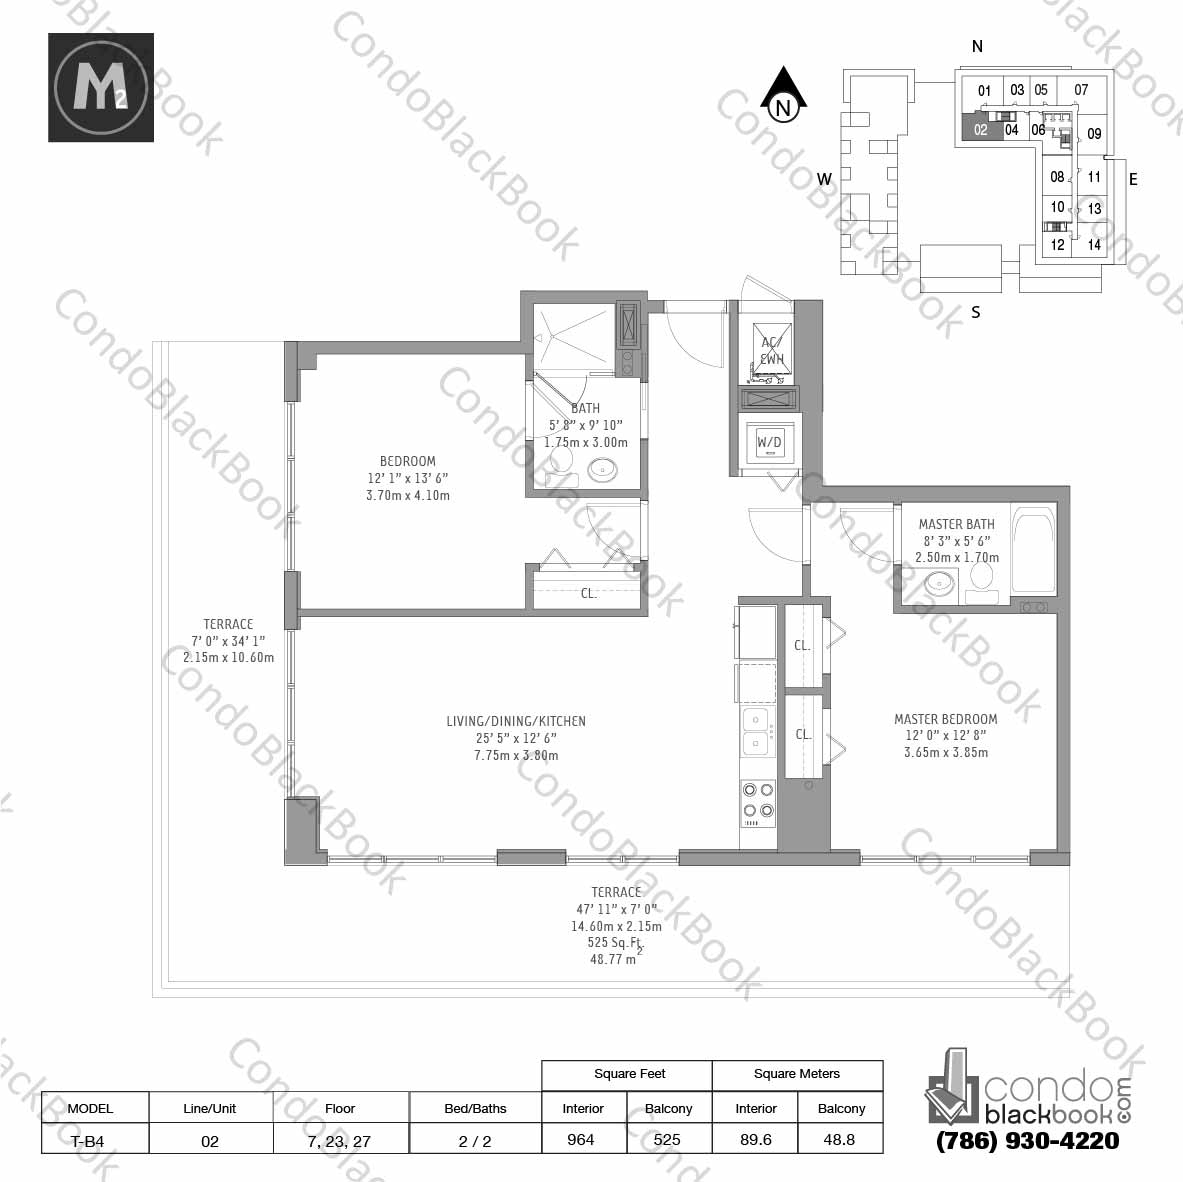 Floor plan for Midtown 2 Midtown Miami, model T-B4, line 02, 2 / 2 bedrooms, 964 sq ft